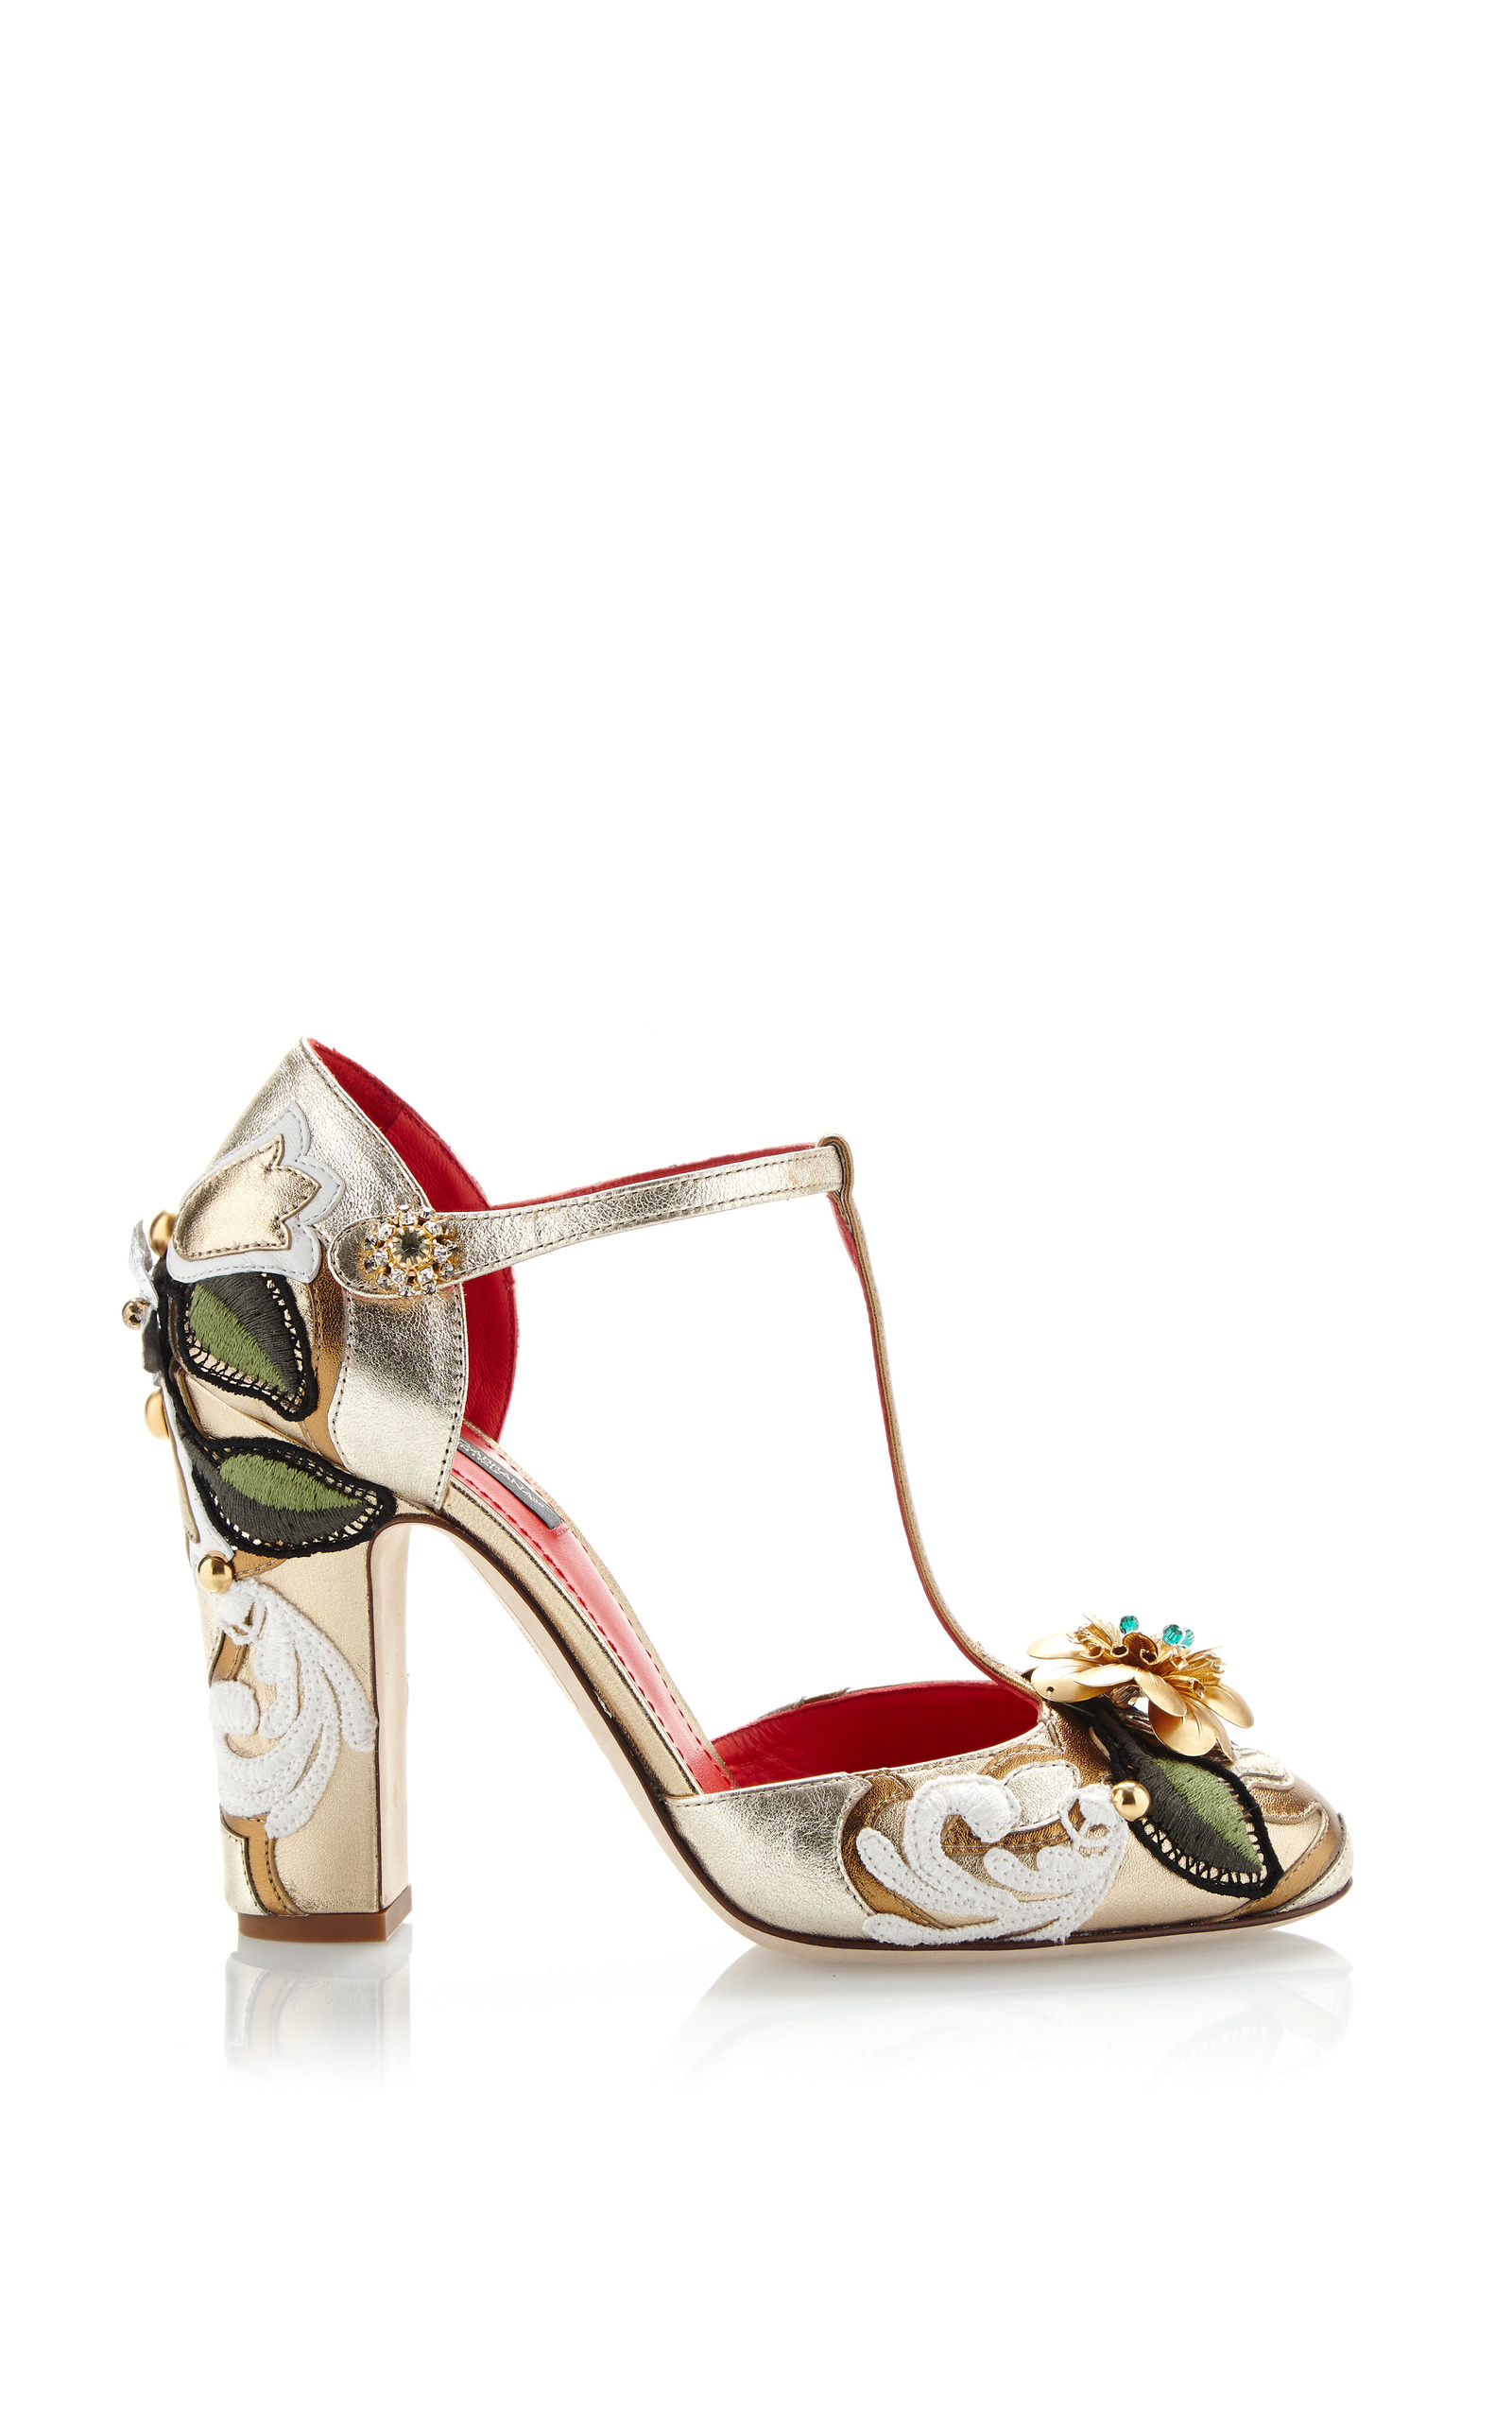 Dolce & Gabbana Metallic Leather Pumps authentic for sale limited edition online XTfAqyj